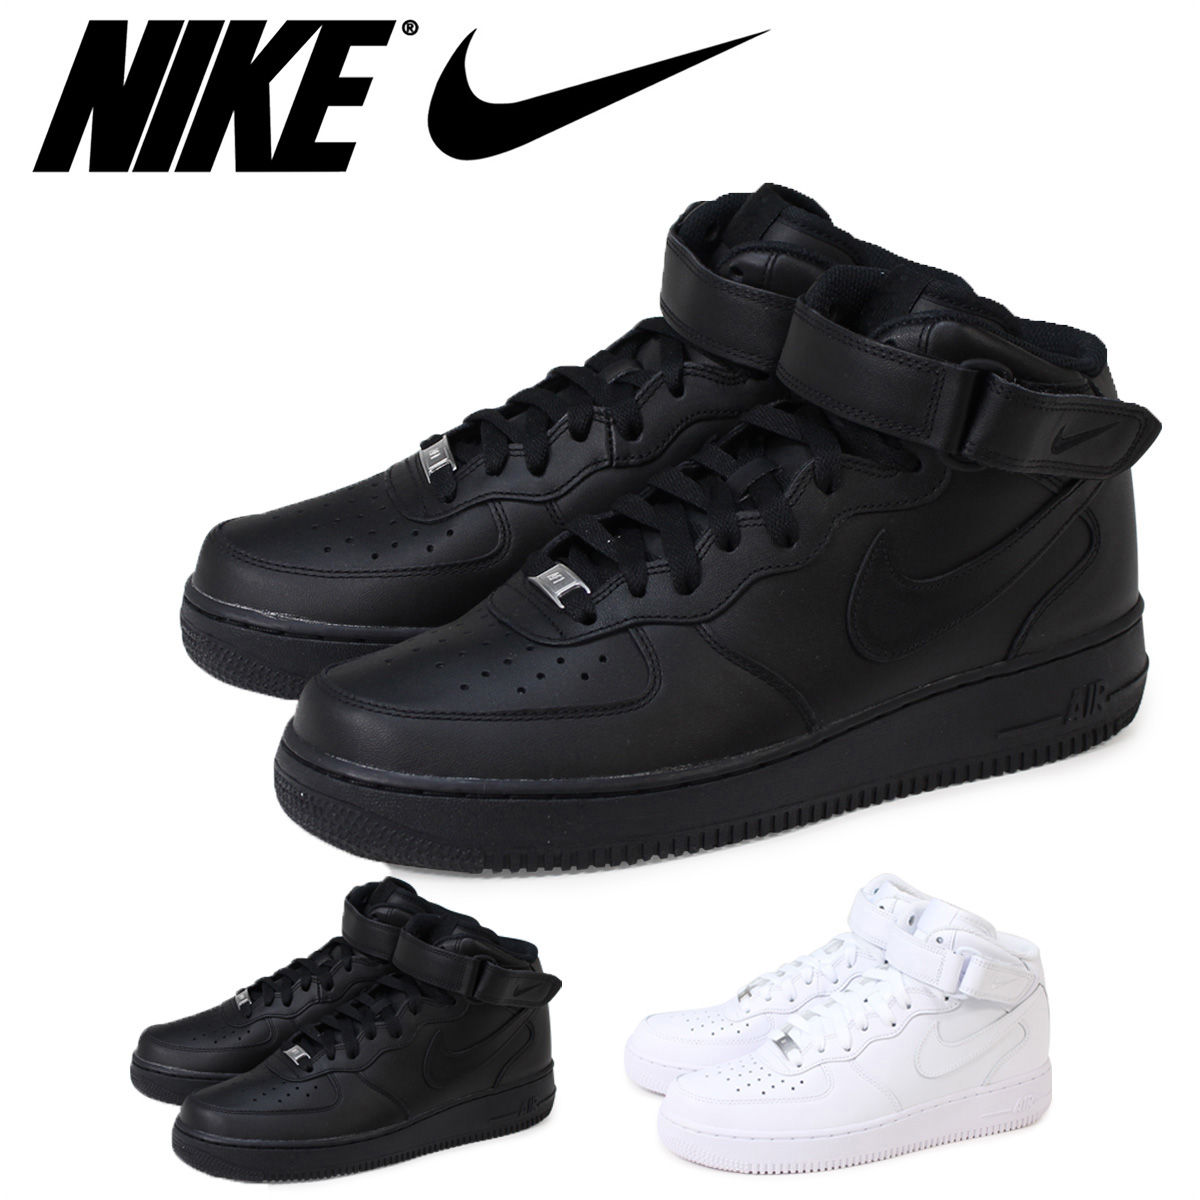 best authentic 21bf0 d221f Nike NIKE air force 1 ladys sneakers AIR FORCE 1 MID air force 1 mid  315,123-001 315,123-111 mens shoes black white the 92 additional arrival